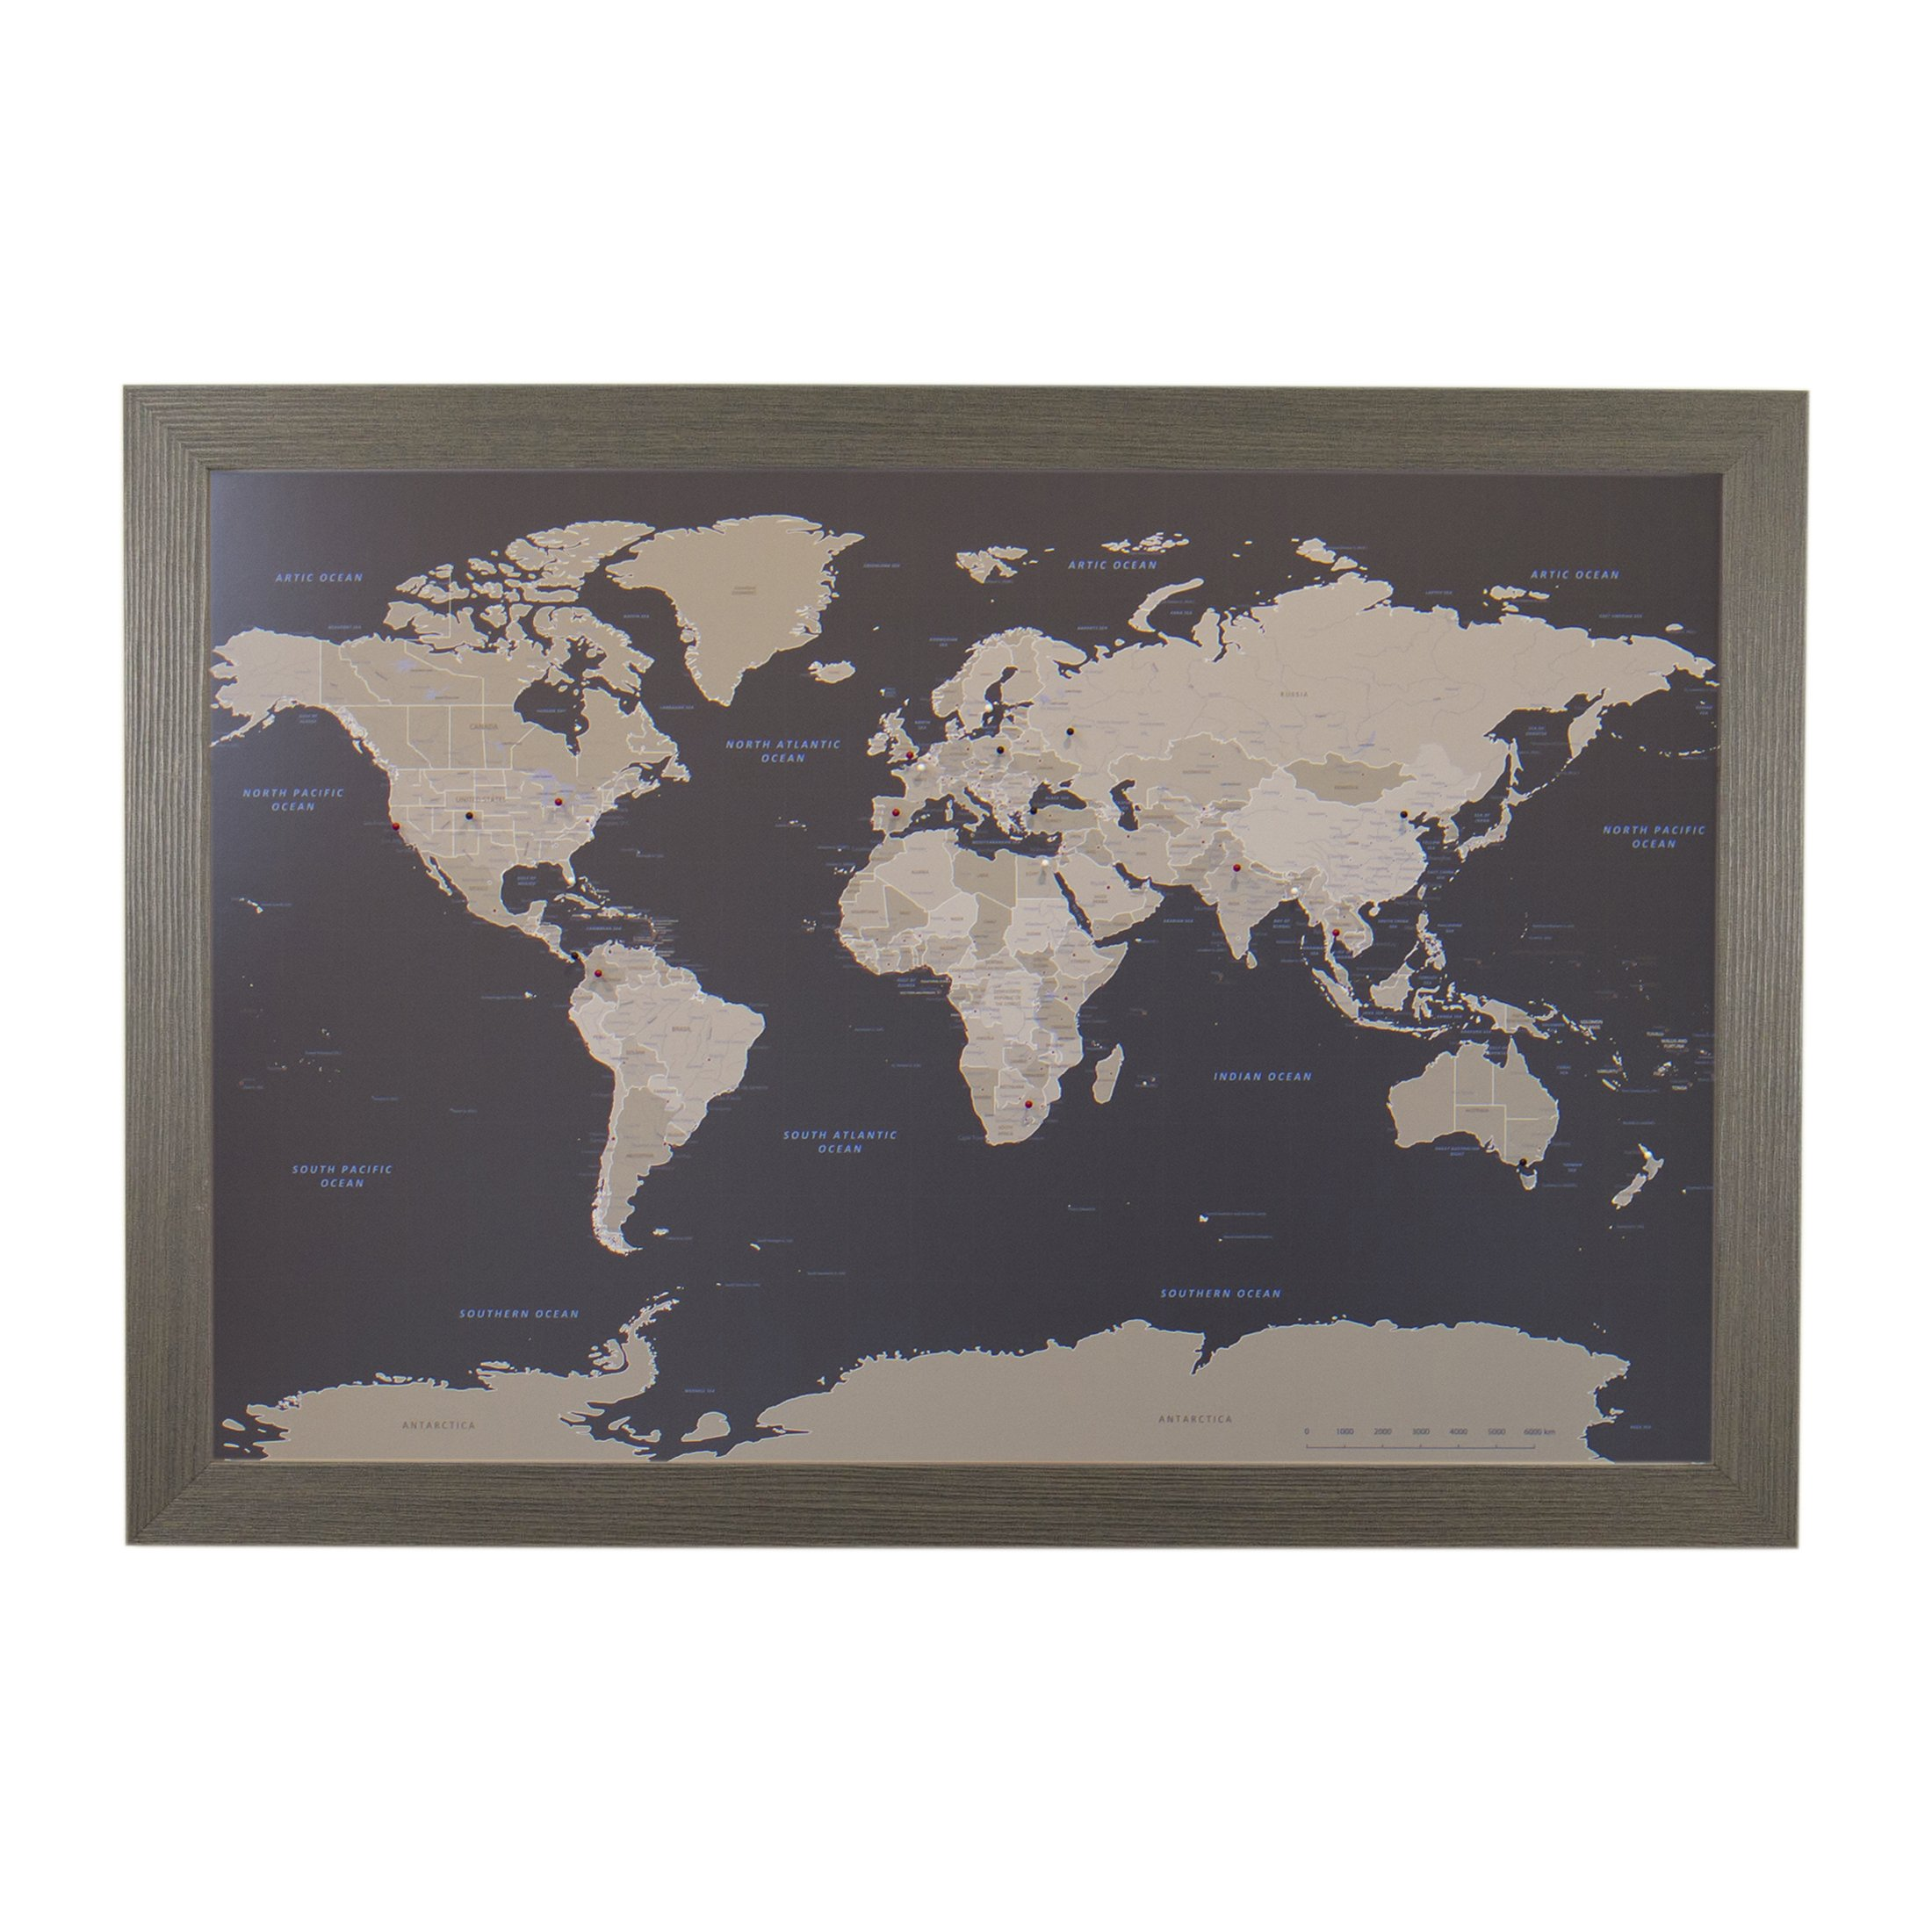 Push Pin Travel Maps Earth Toned World with Barnwood Gray Frame and Pins - 27.5 inches x 39.5 inches